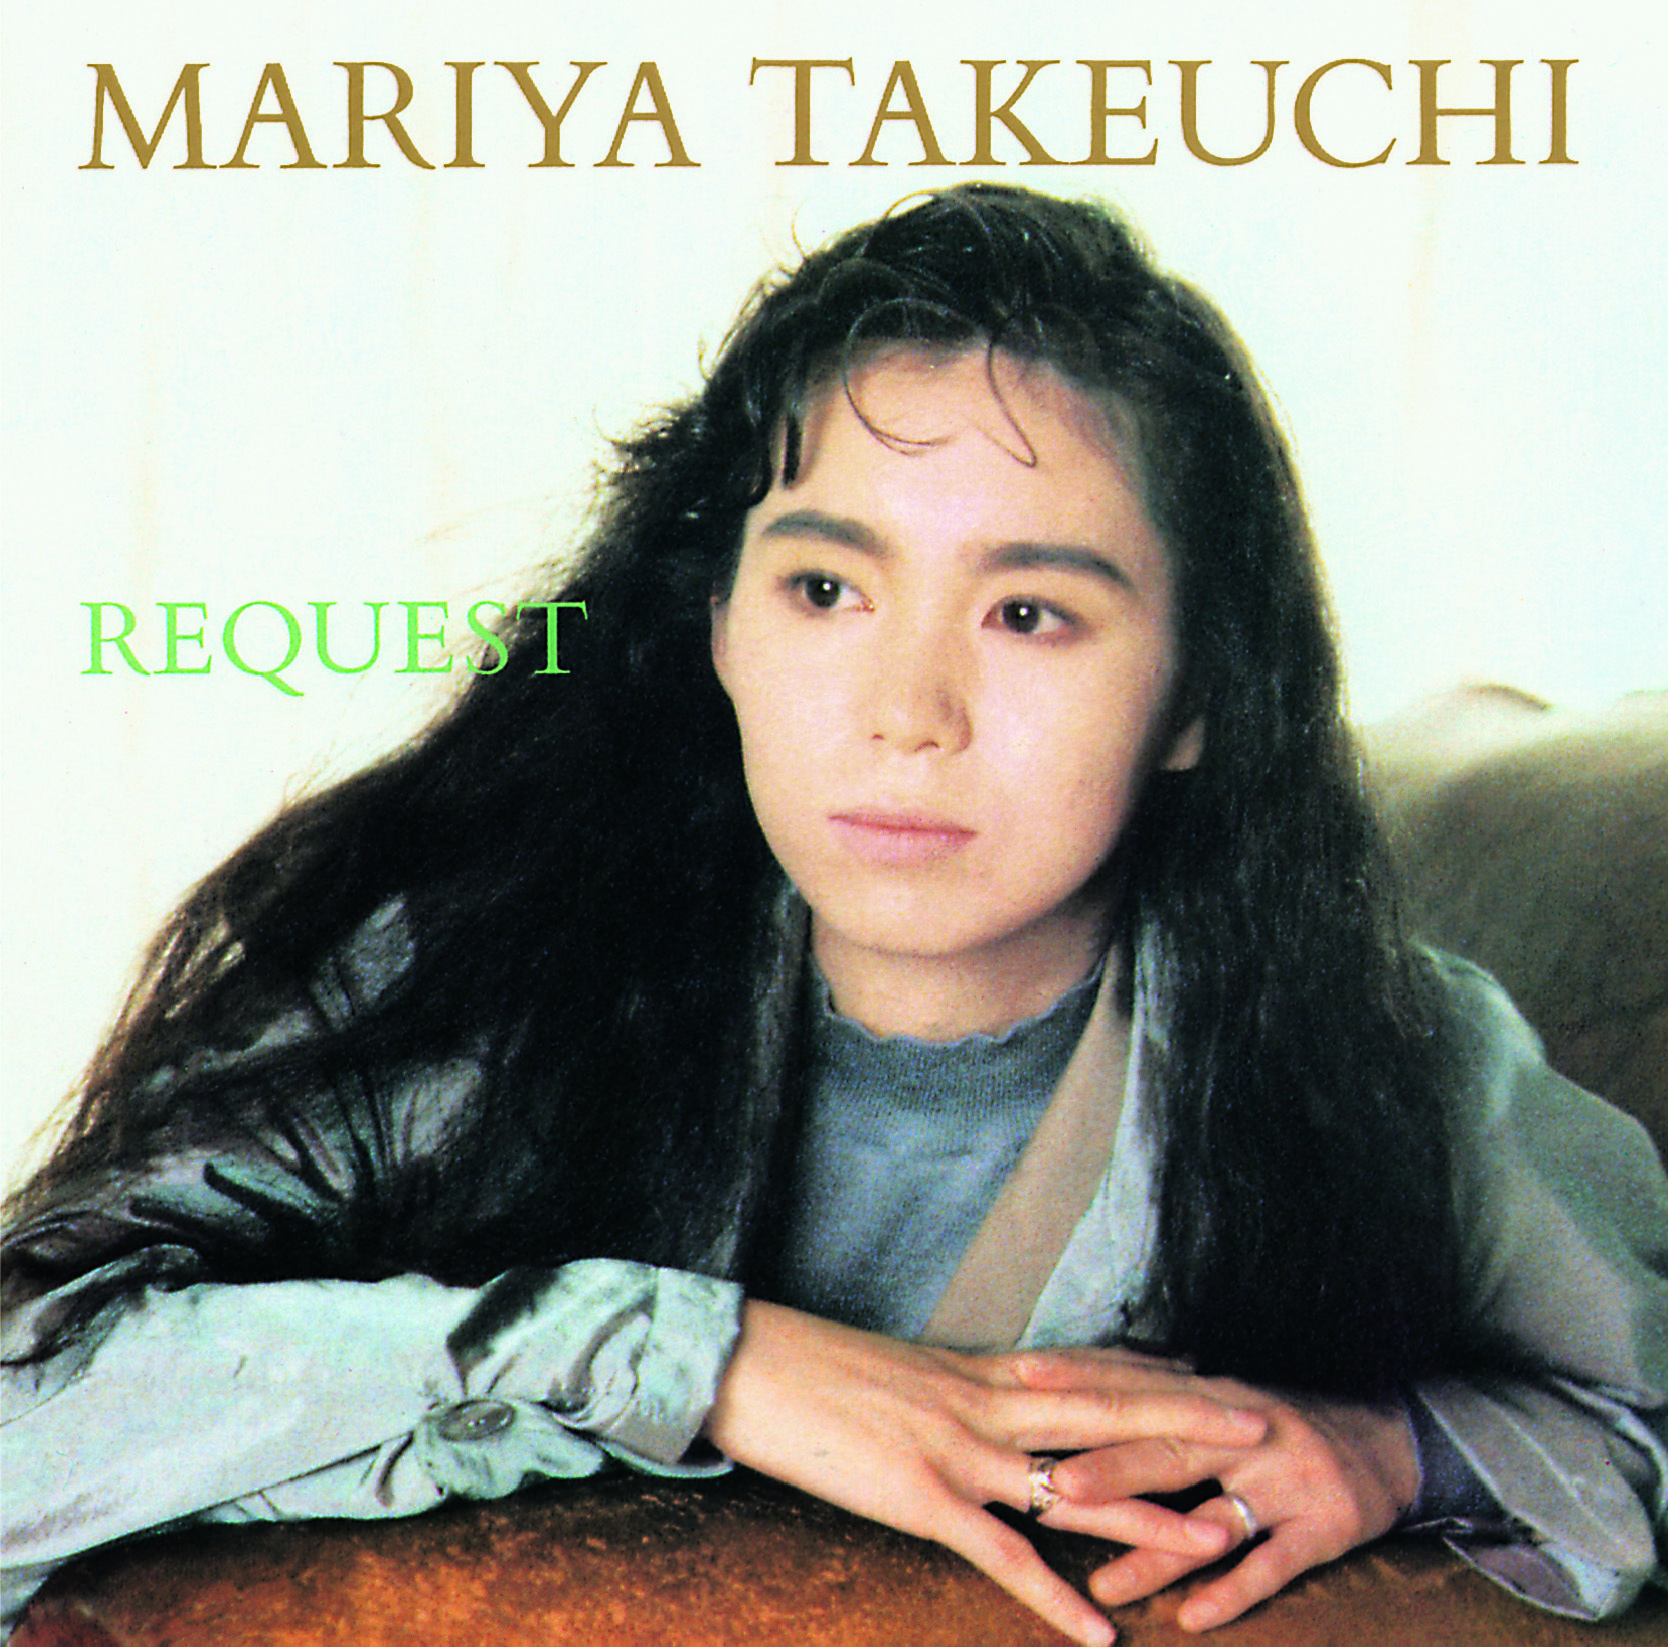 竹内まりや『REQUEST-30th Anniversary Edition-』